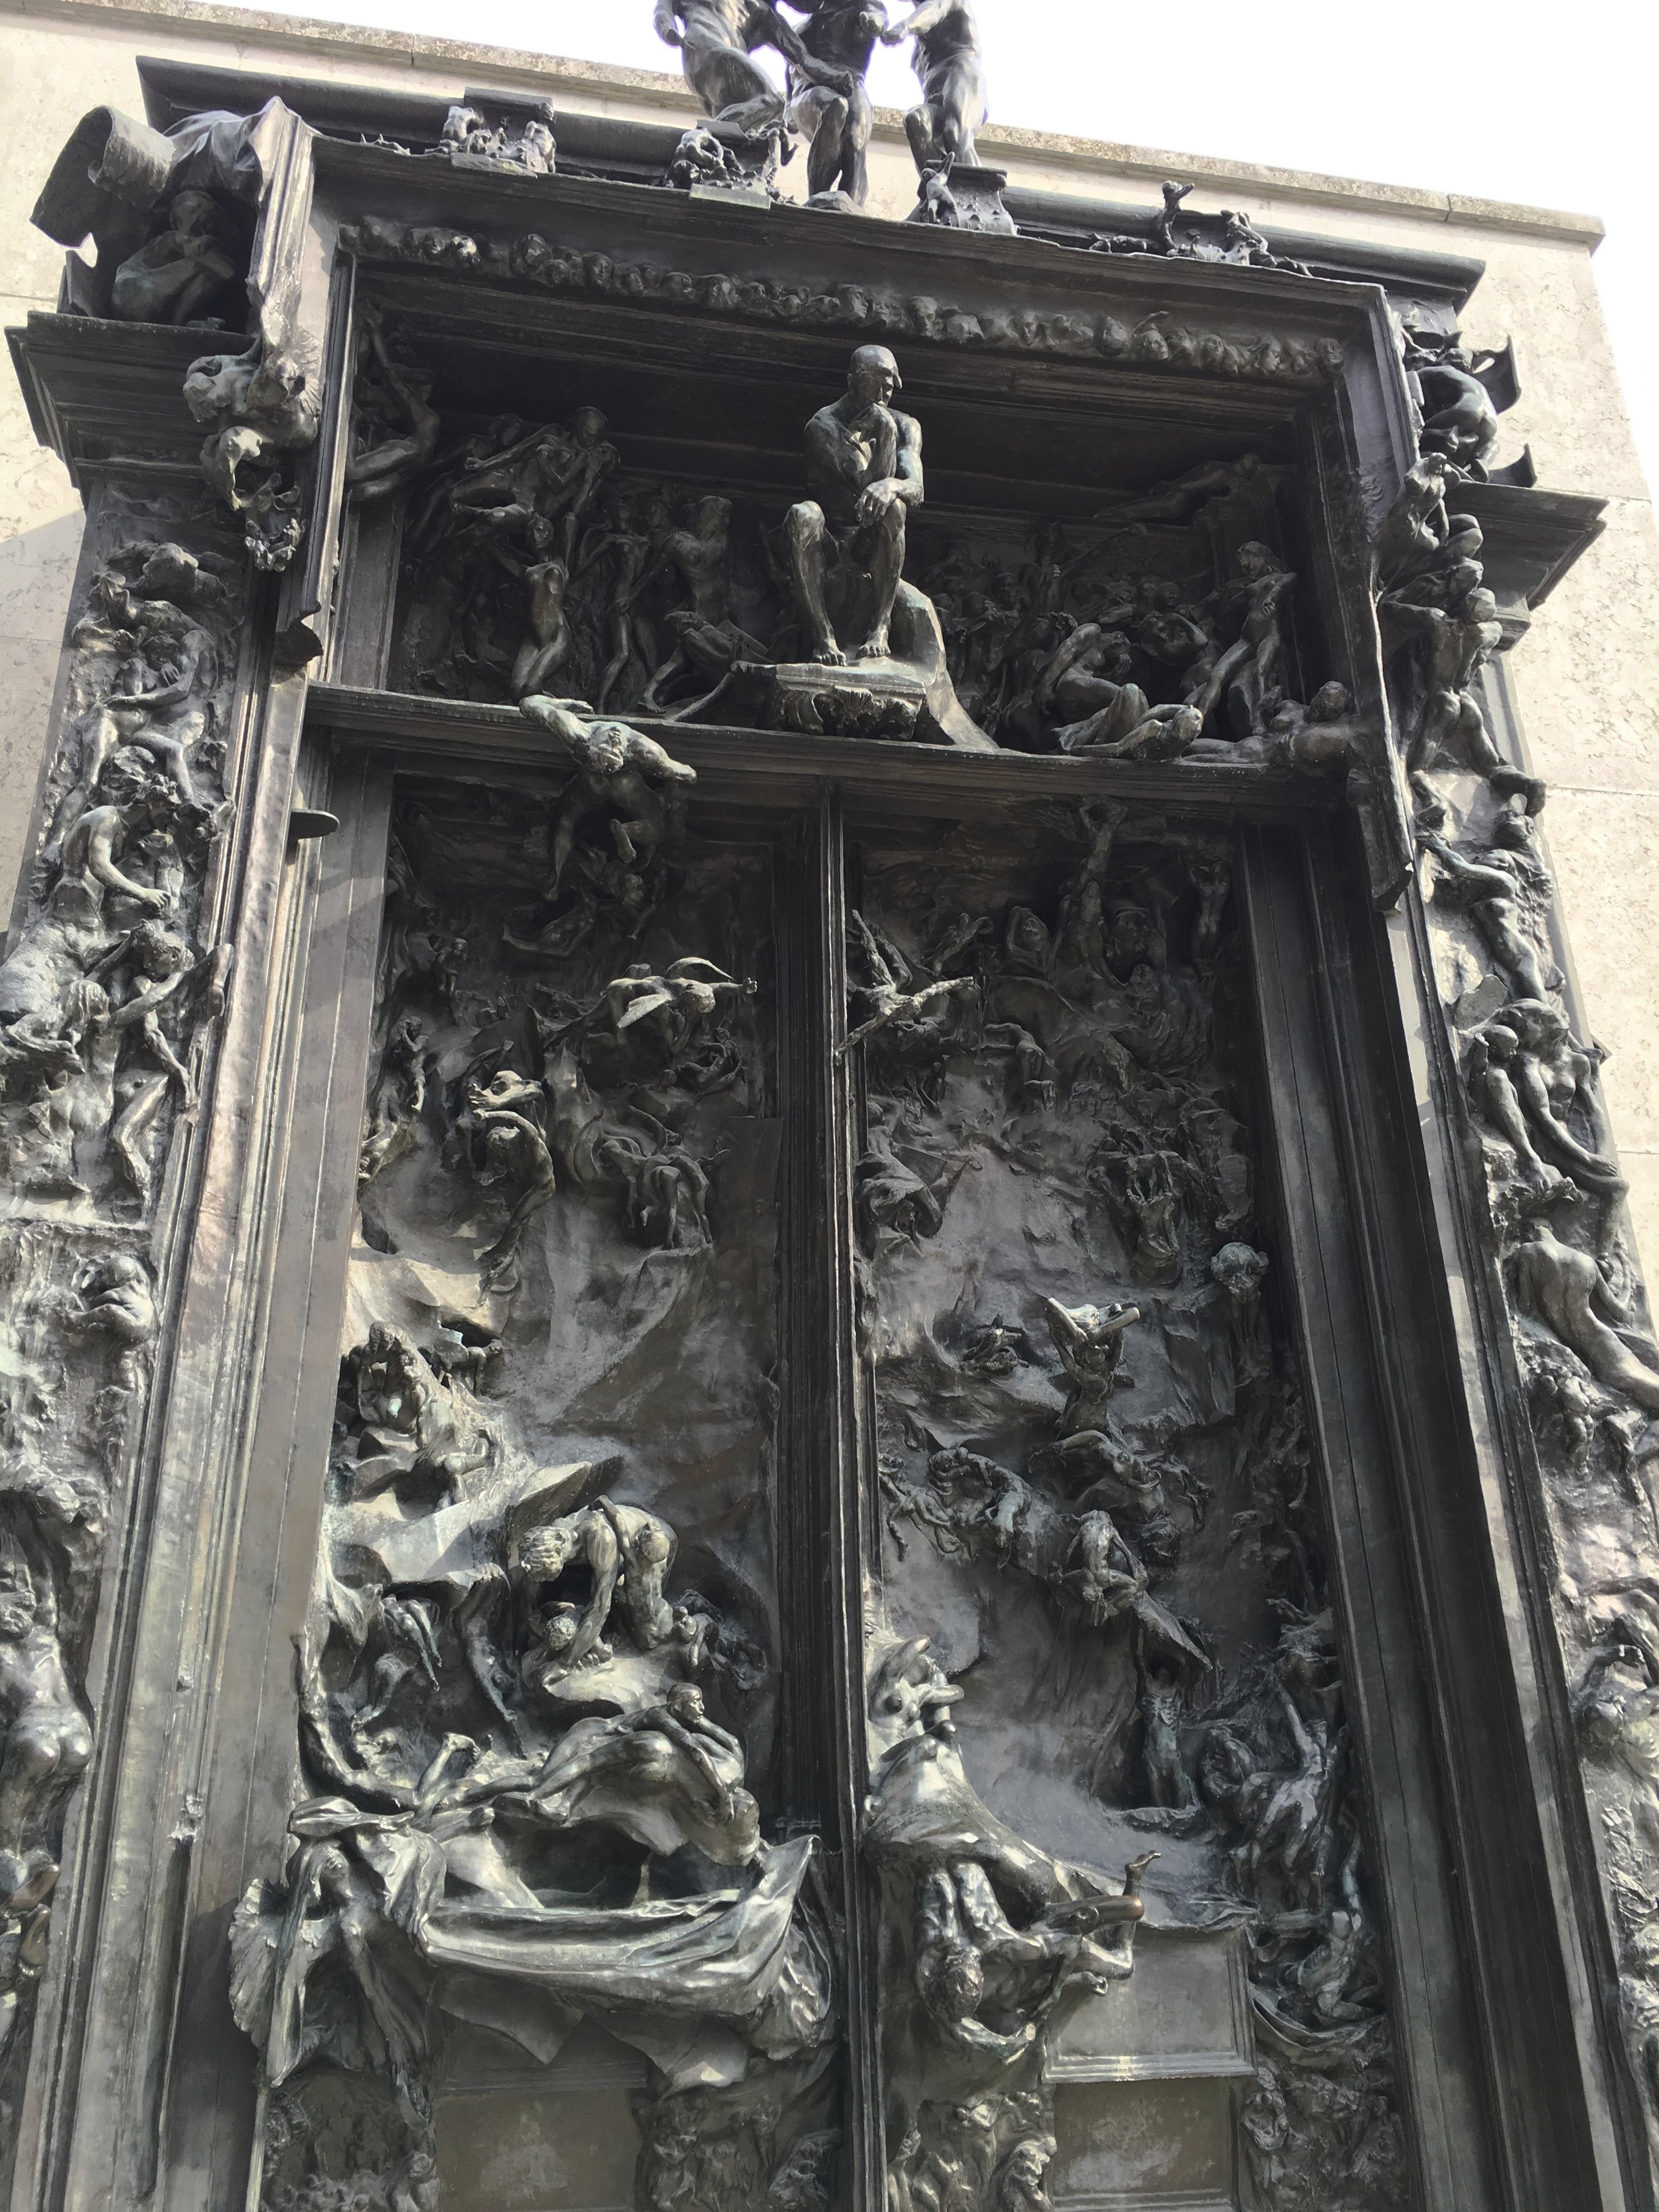 And then Rodin